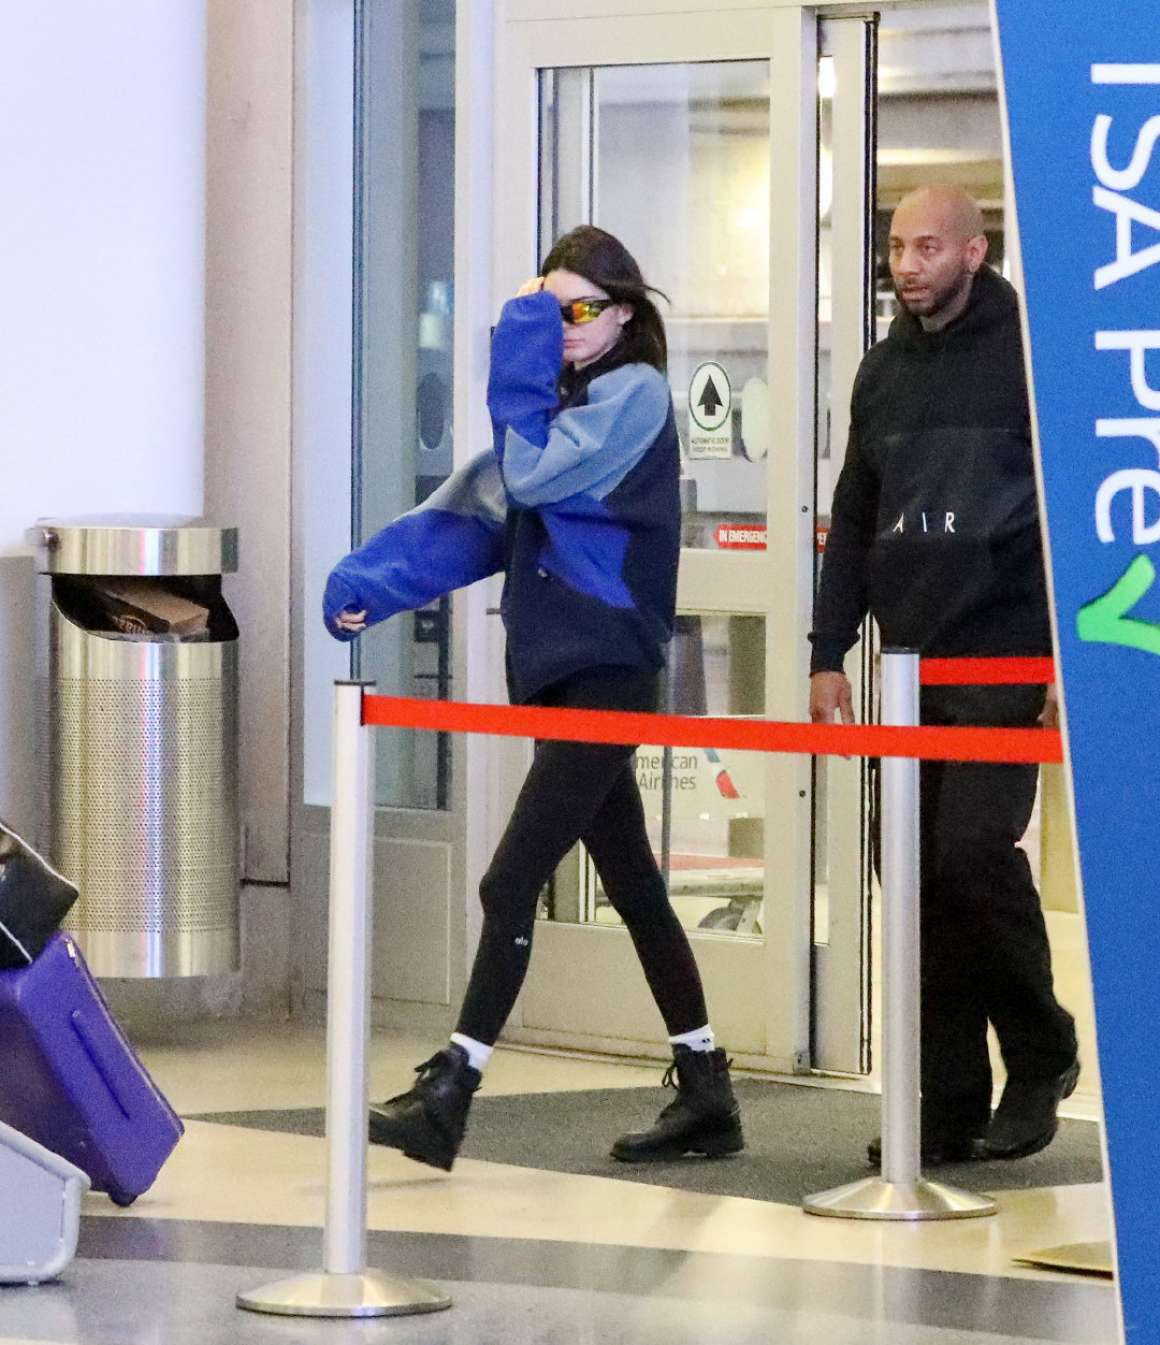 Kendall Jenner rocking a relaxed fit navy blue jacket with extra long sleeves and a turtleneck